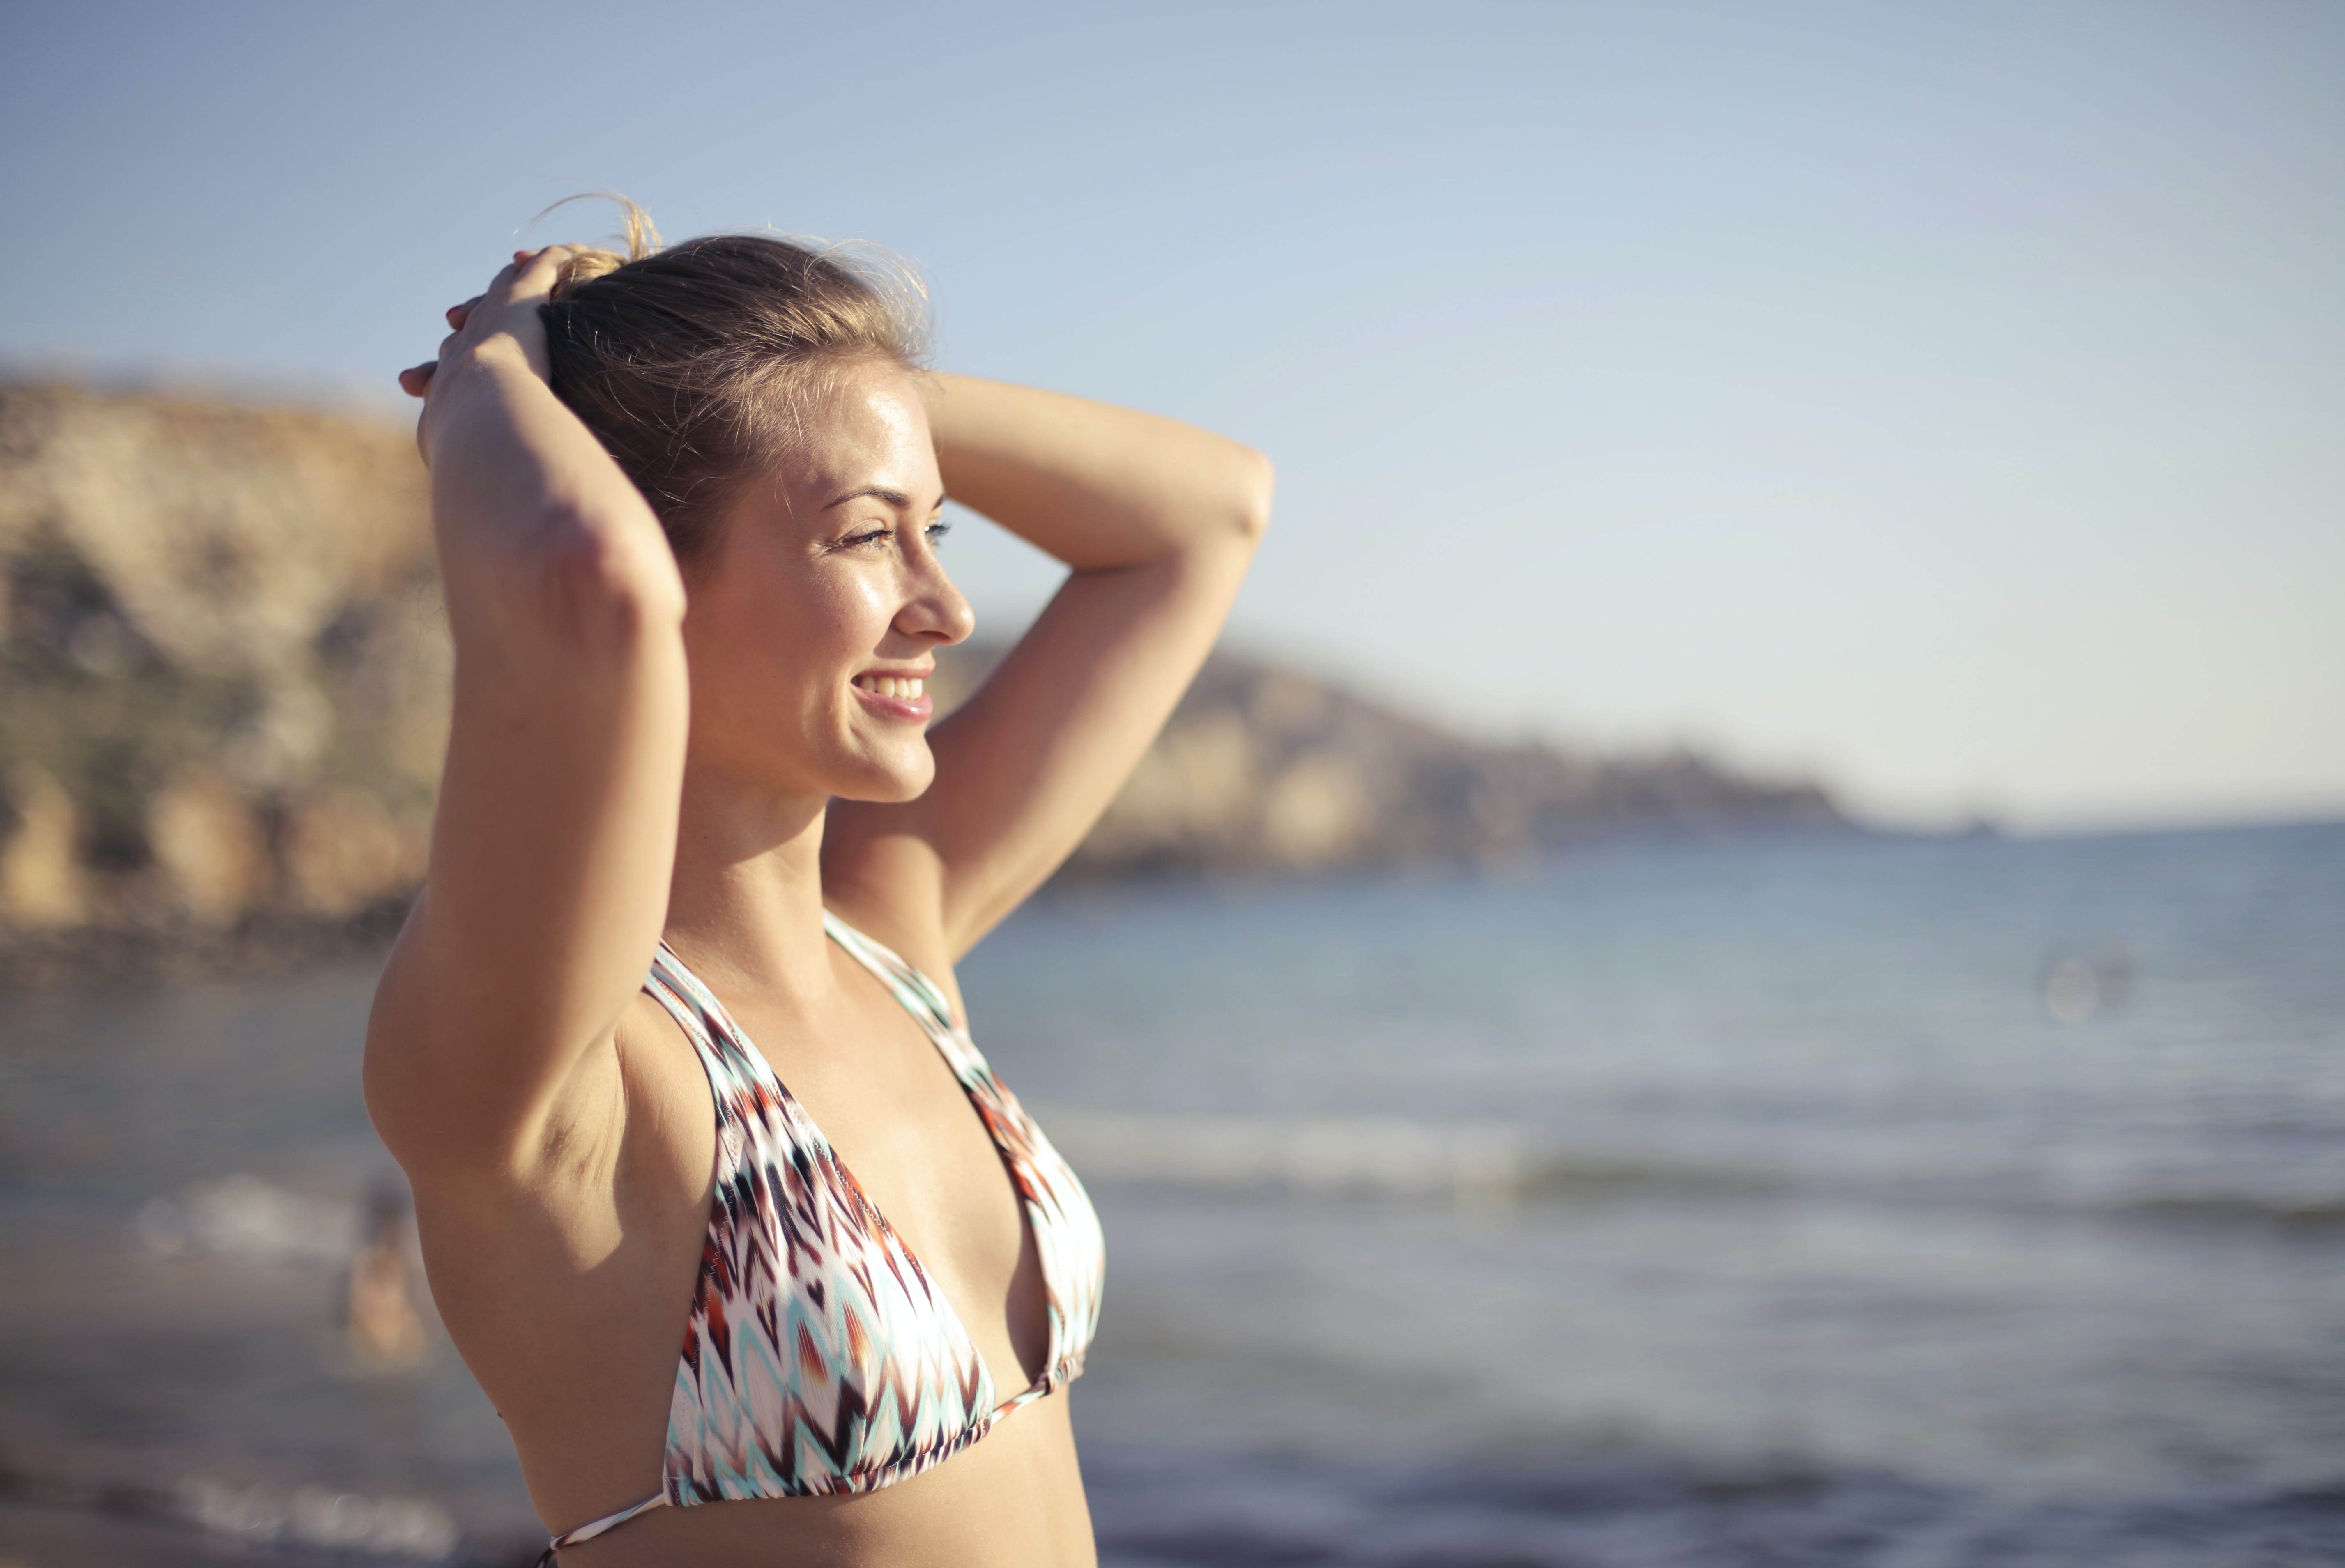 Blonde Haired Woman Wearing White 2-piece Swimsuit